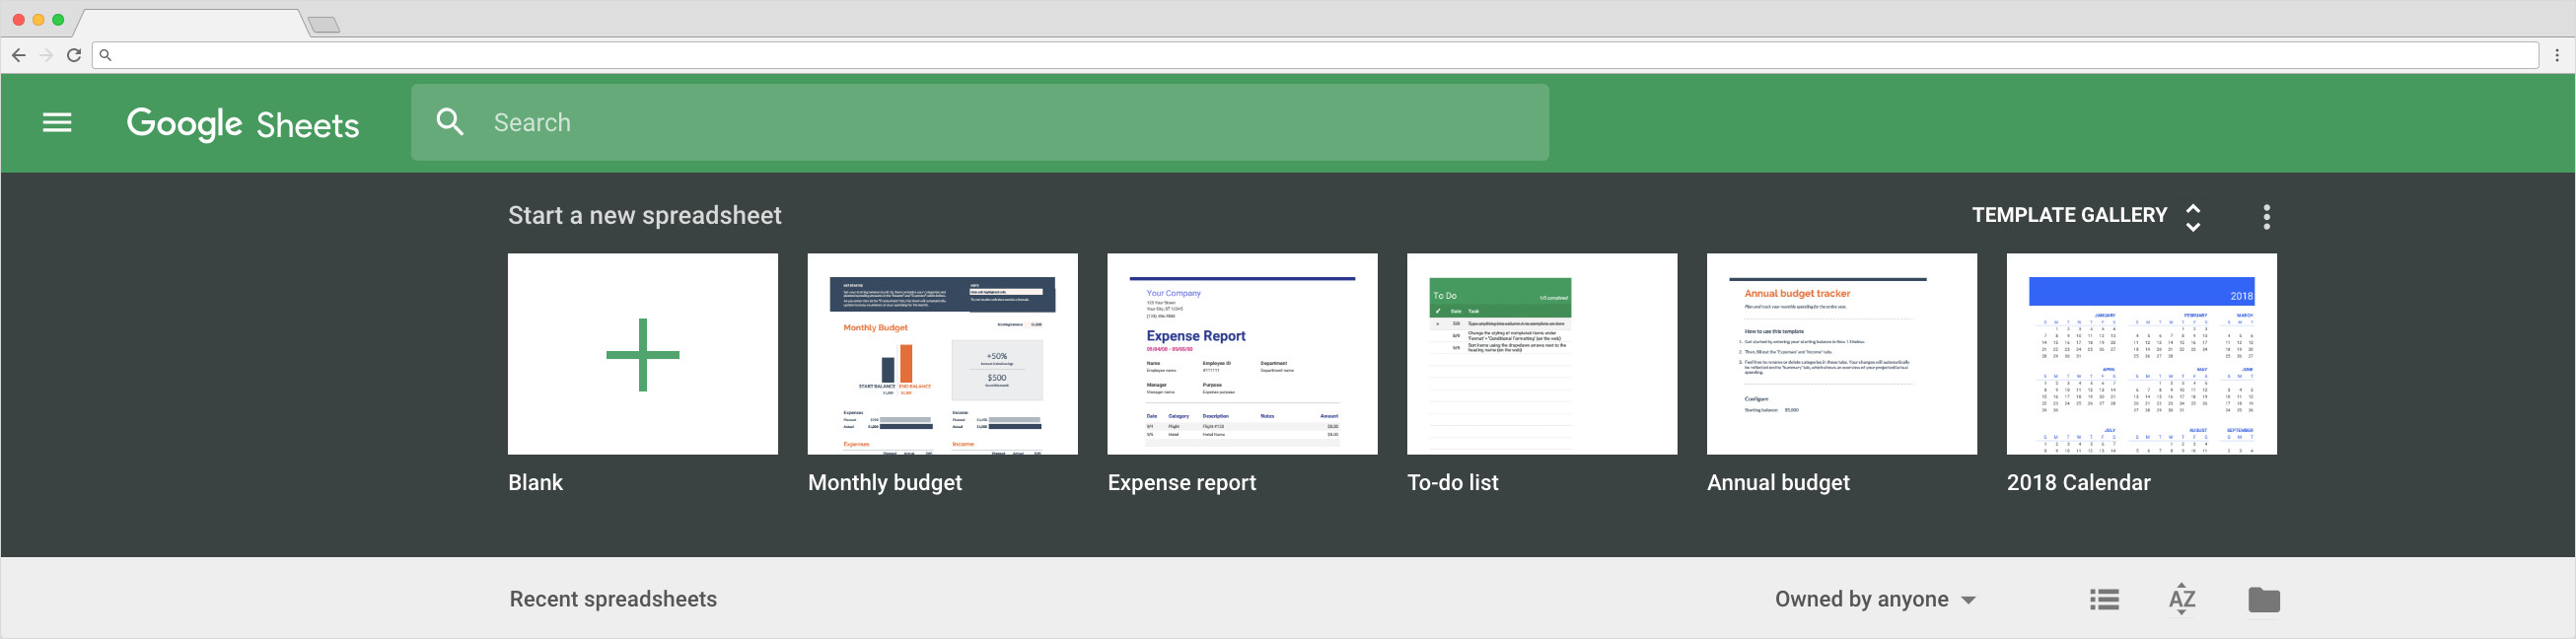 Google Sheets Inventory Template top 5 Free Google Sheets Inventory Templates Blog Sheetgo